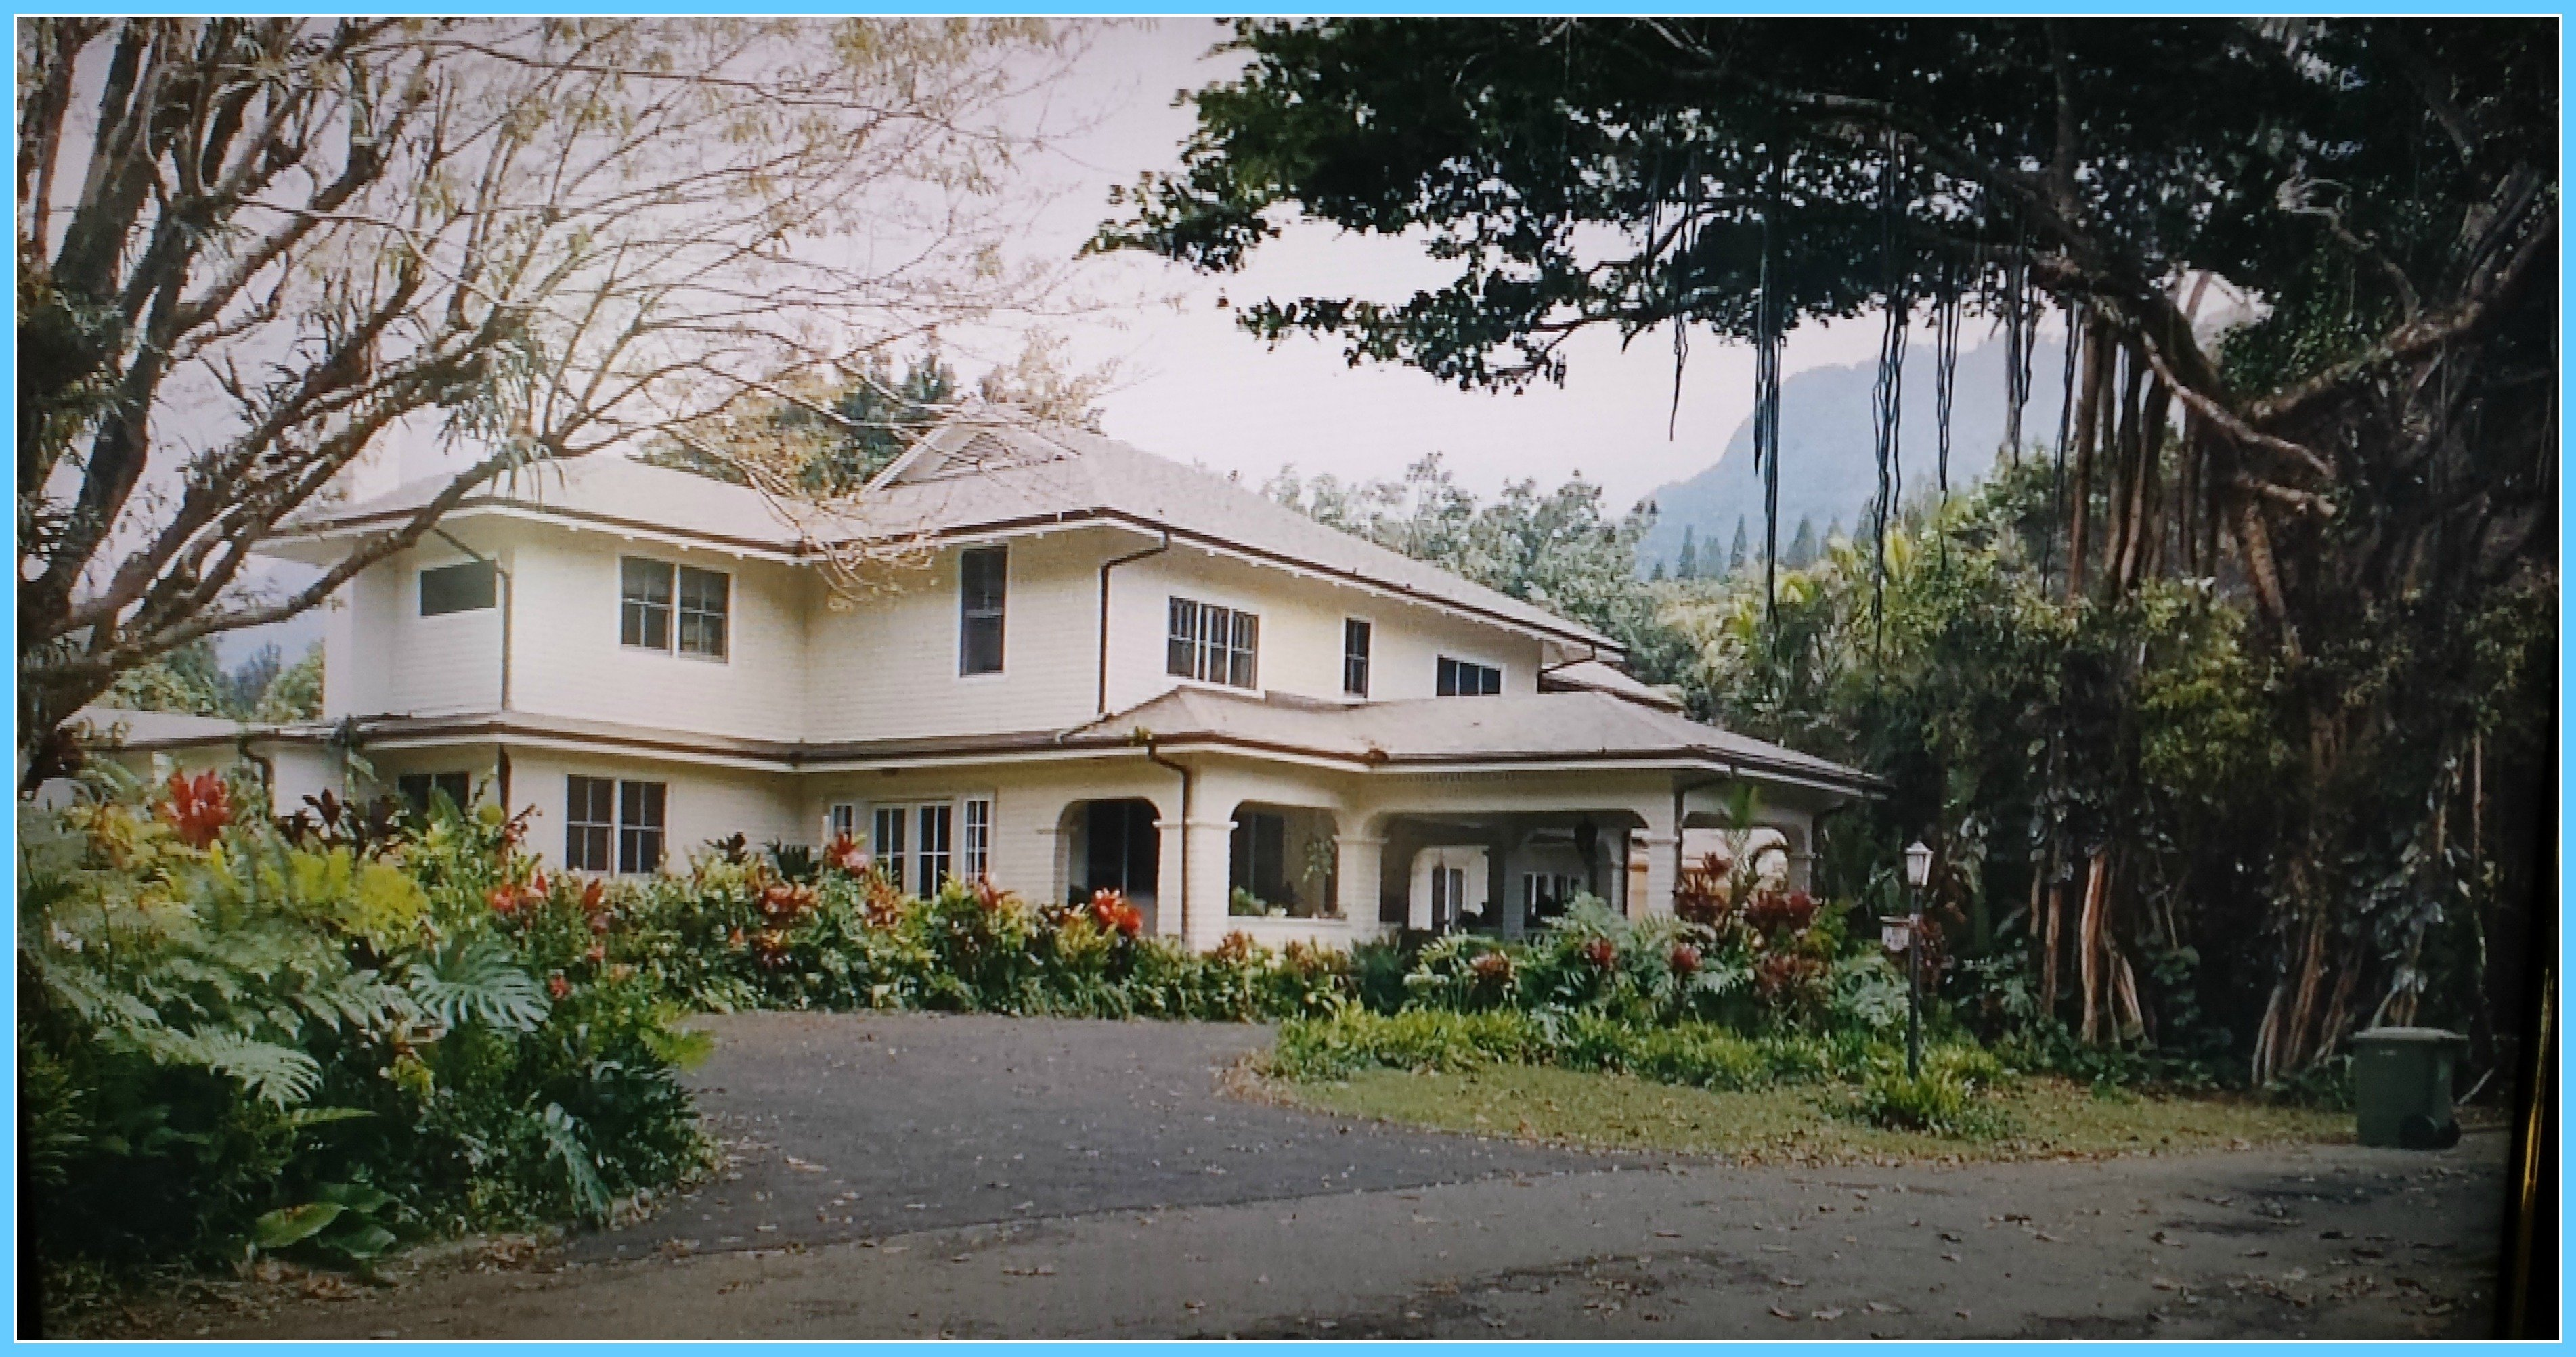 The Descendants Movie Houses Filming Locations, Photos